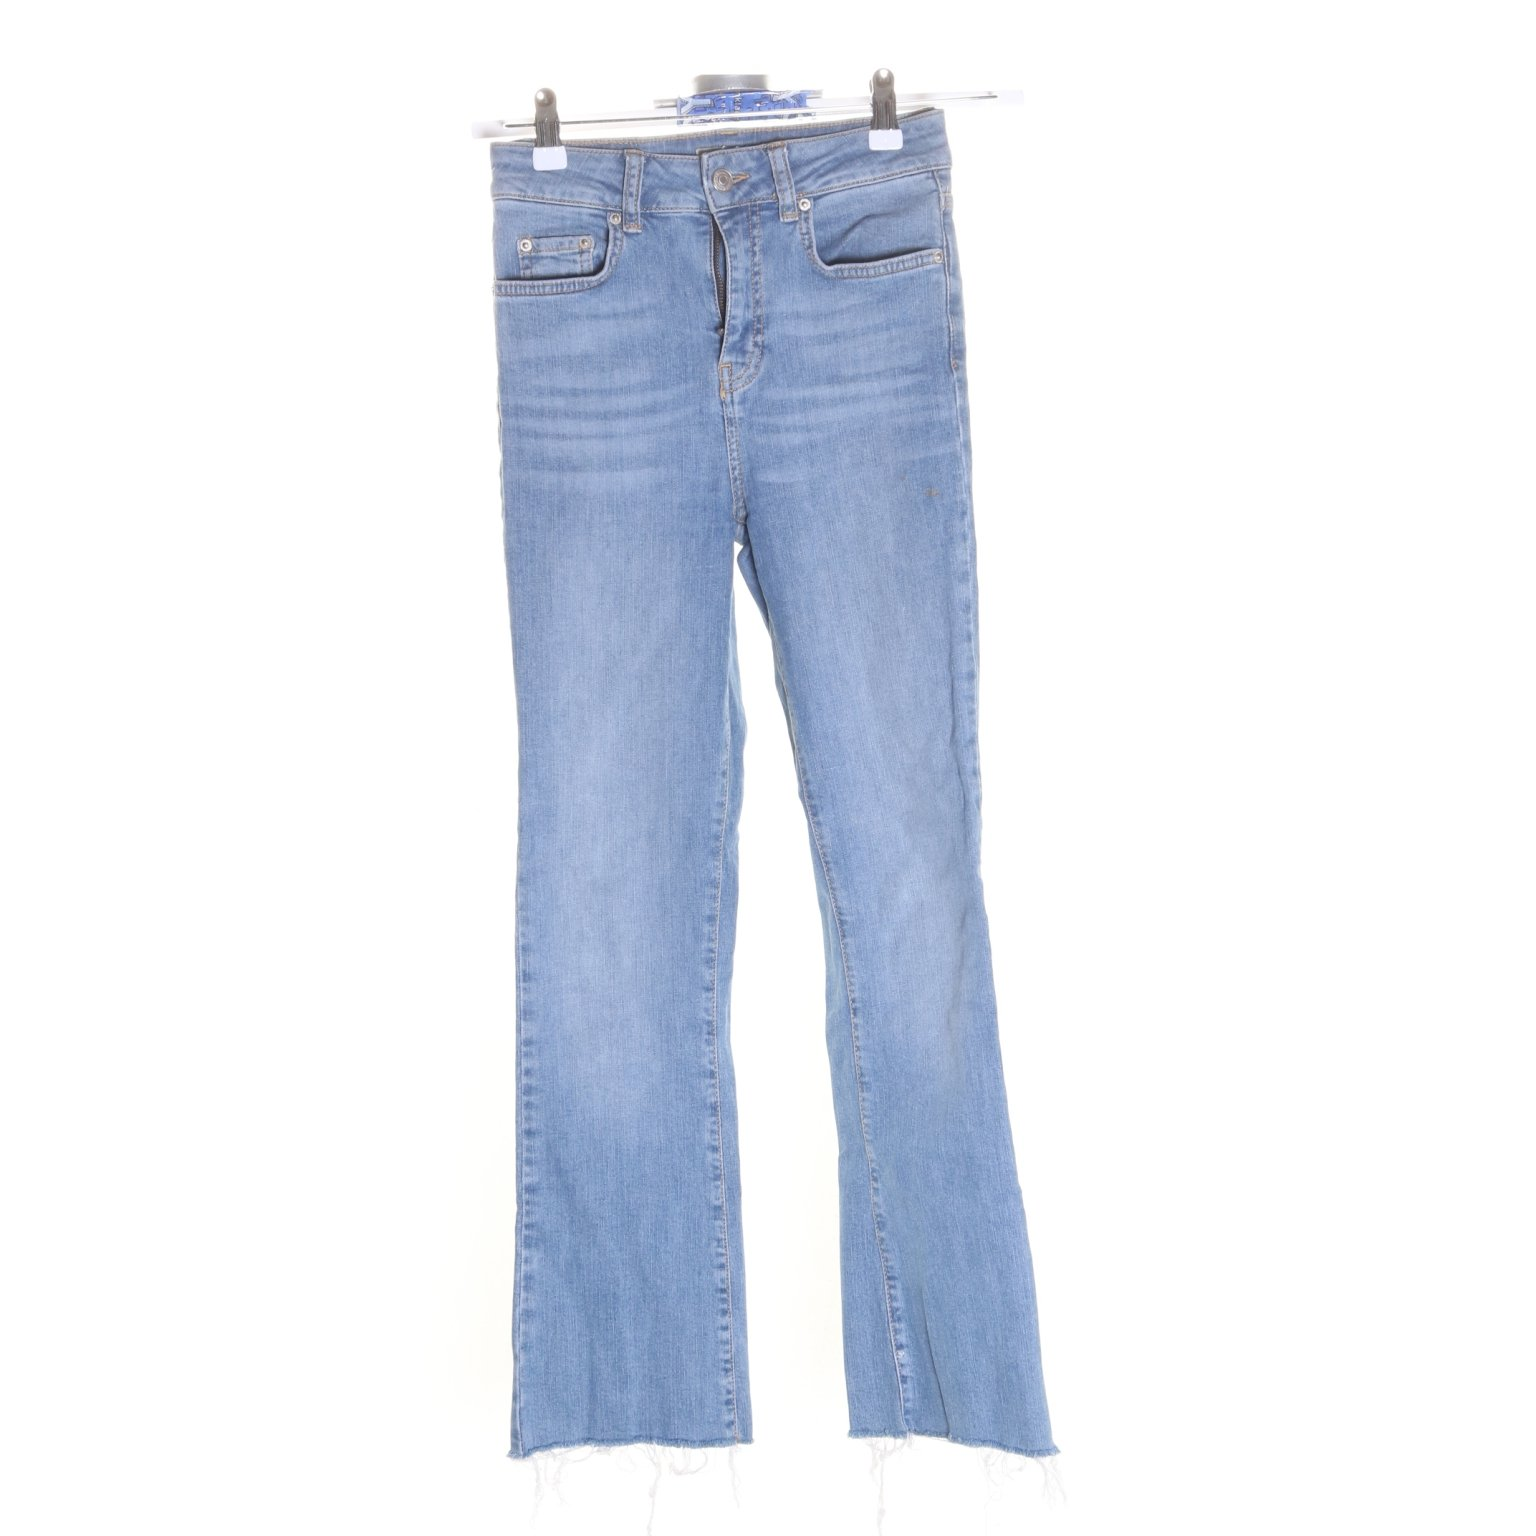 Perfect Jeans Gina Tricot, Jeans, Strl: 34, Blå, Bomull/Elastan